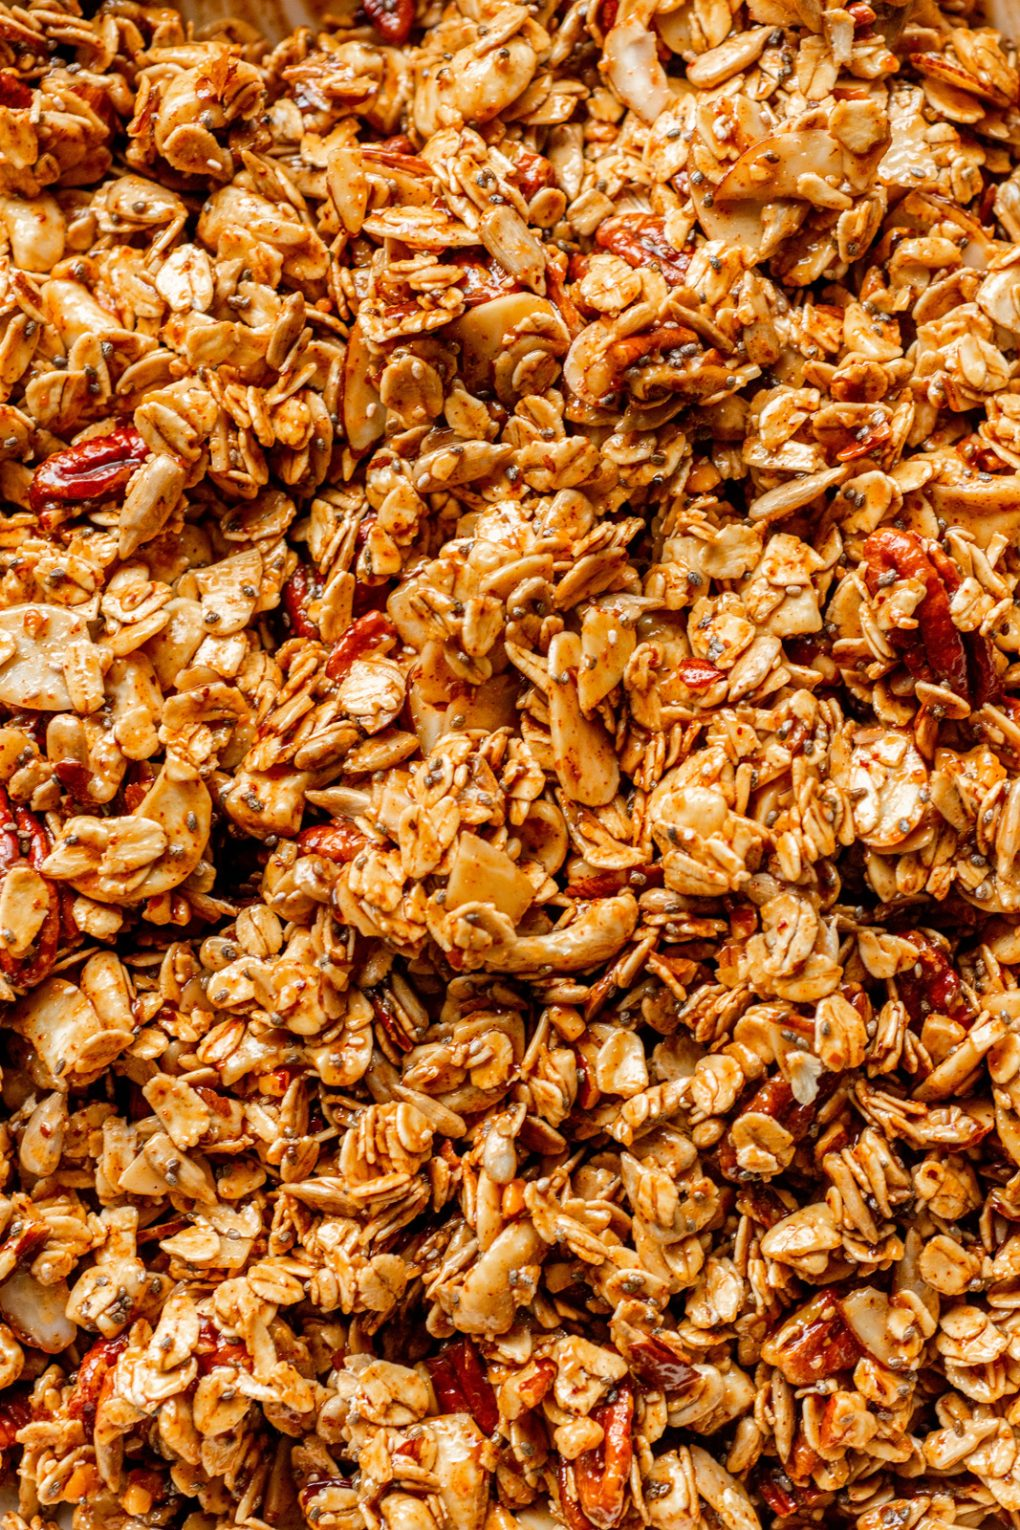 Overhead image of un-baked gluten free granola pressed into a baking sheet.